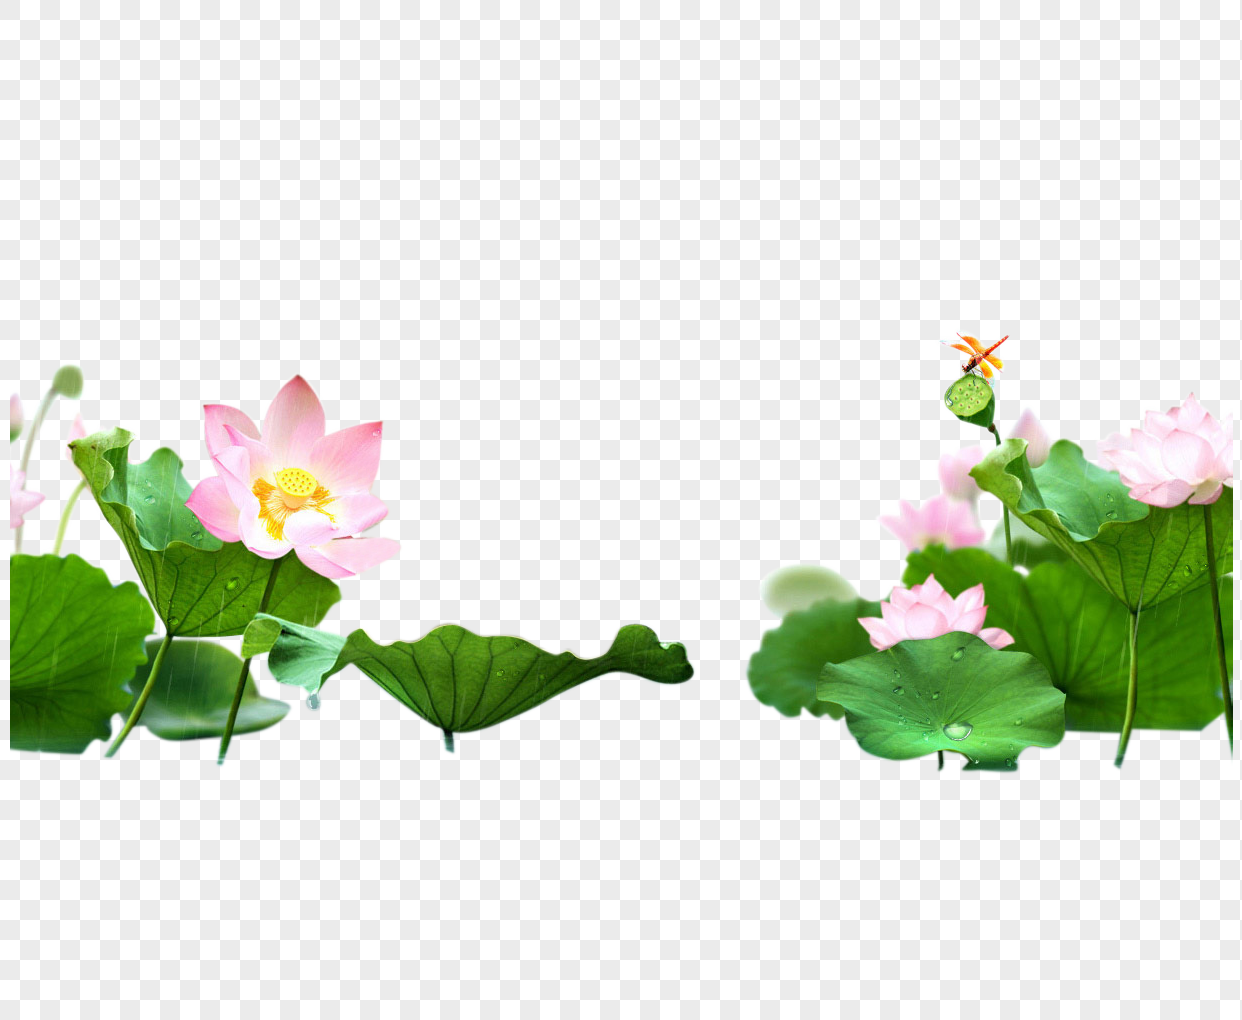 The corner of the lotus pond png image_picture free download.